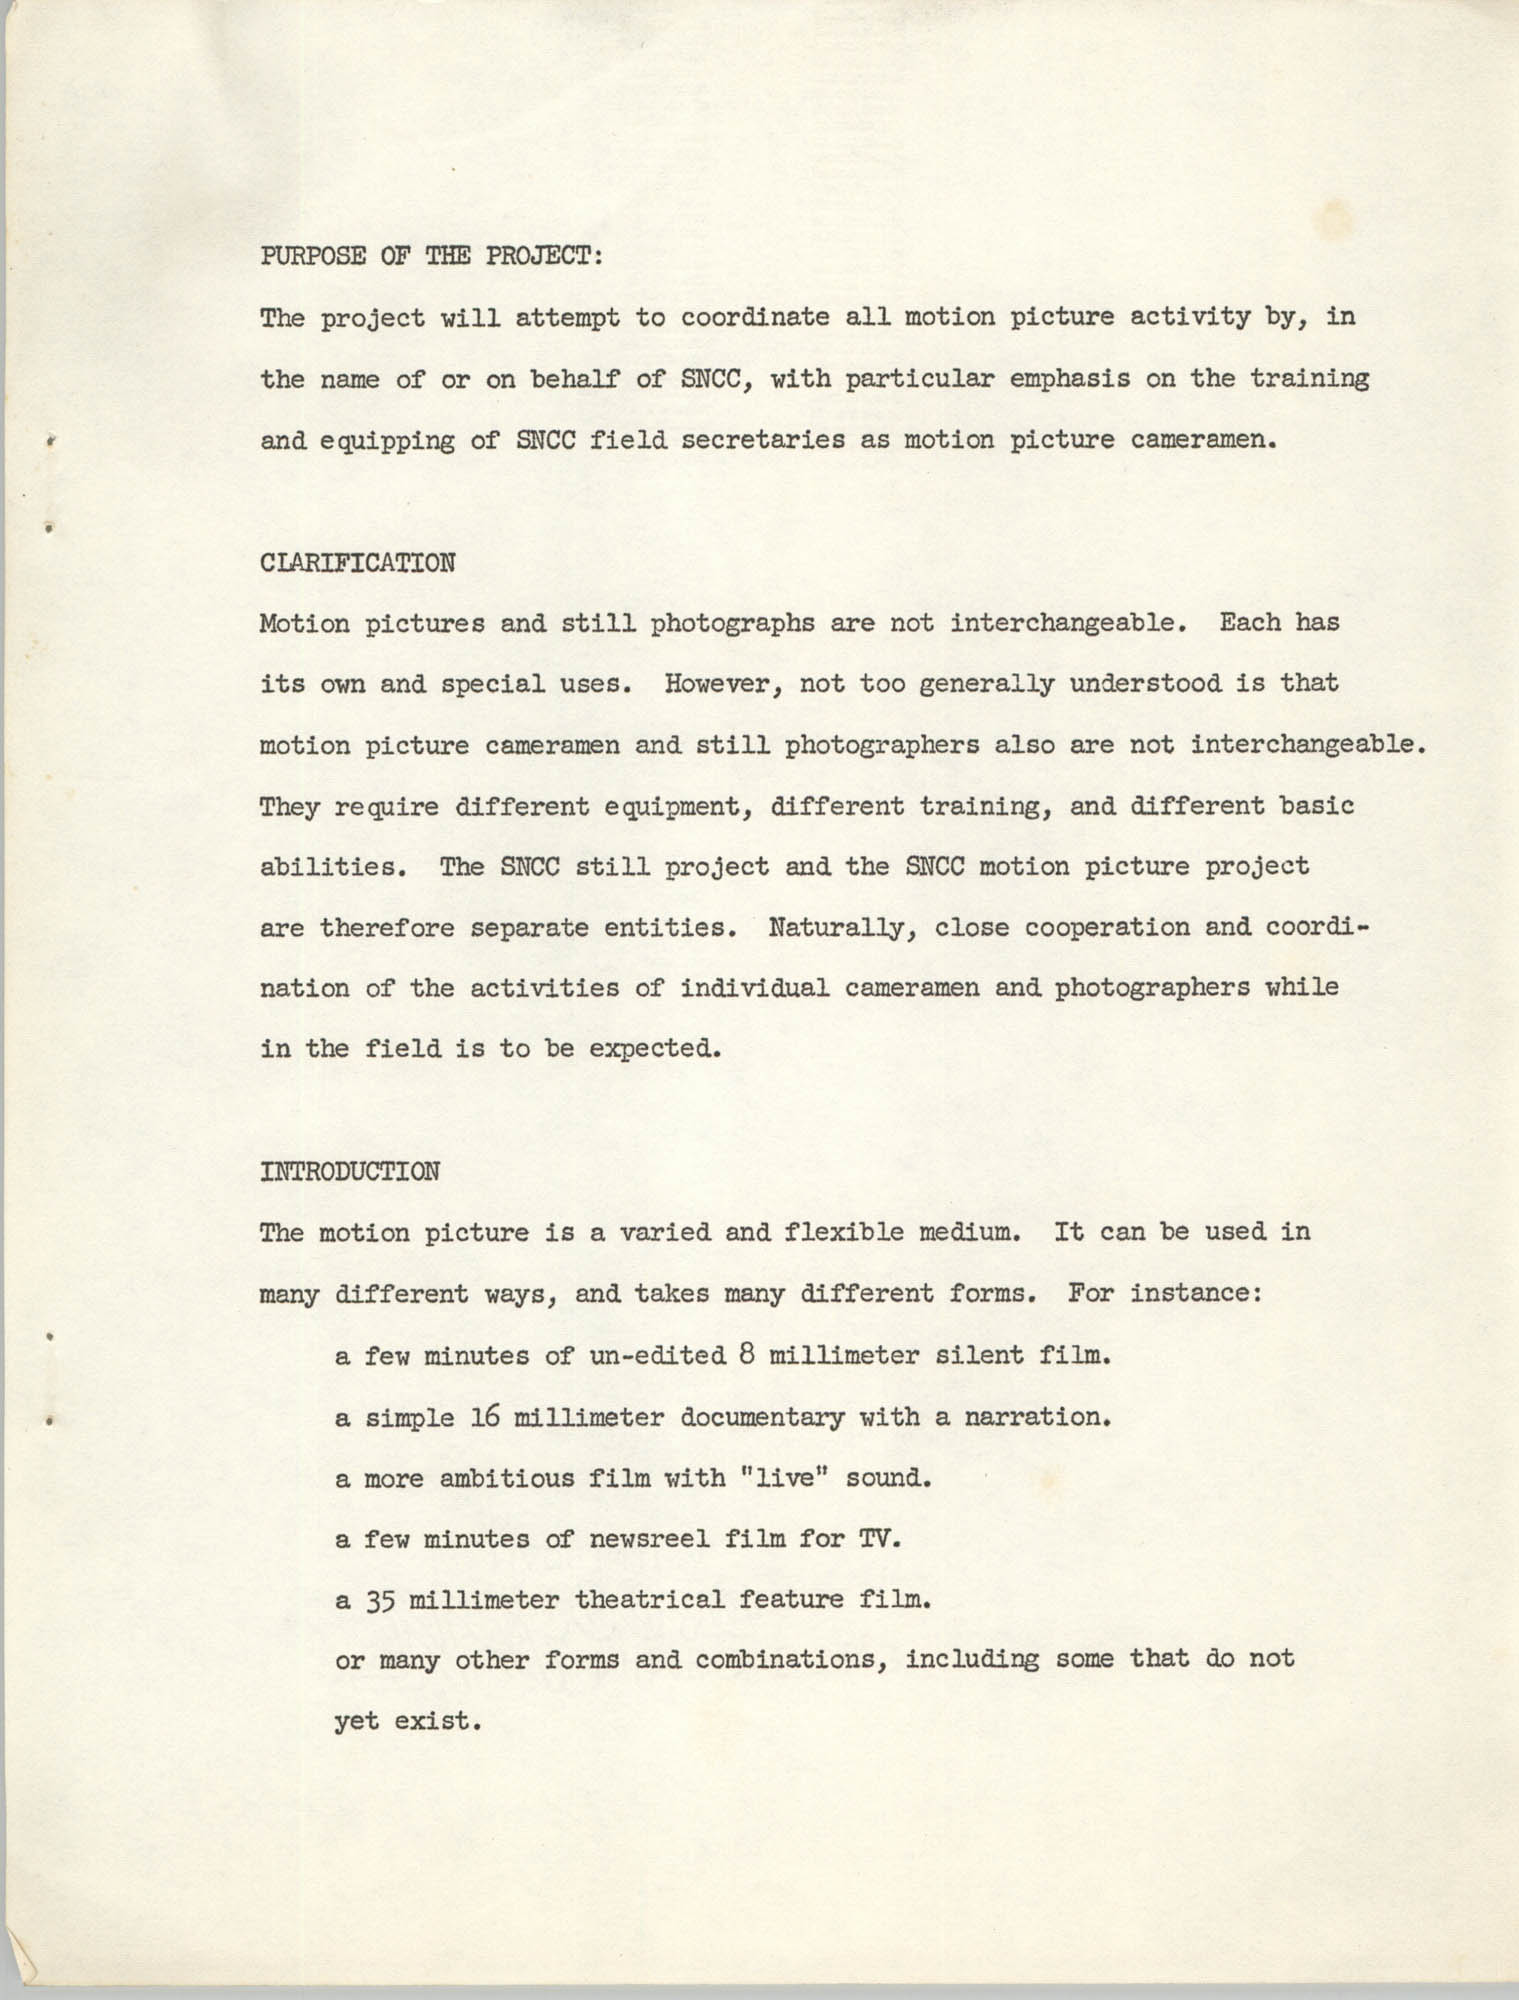 The SNCC Motion Picture Project: A Progress Report and Program Outline, Page 1